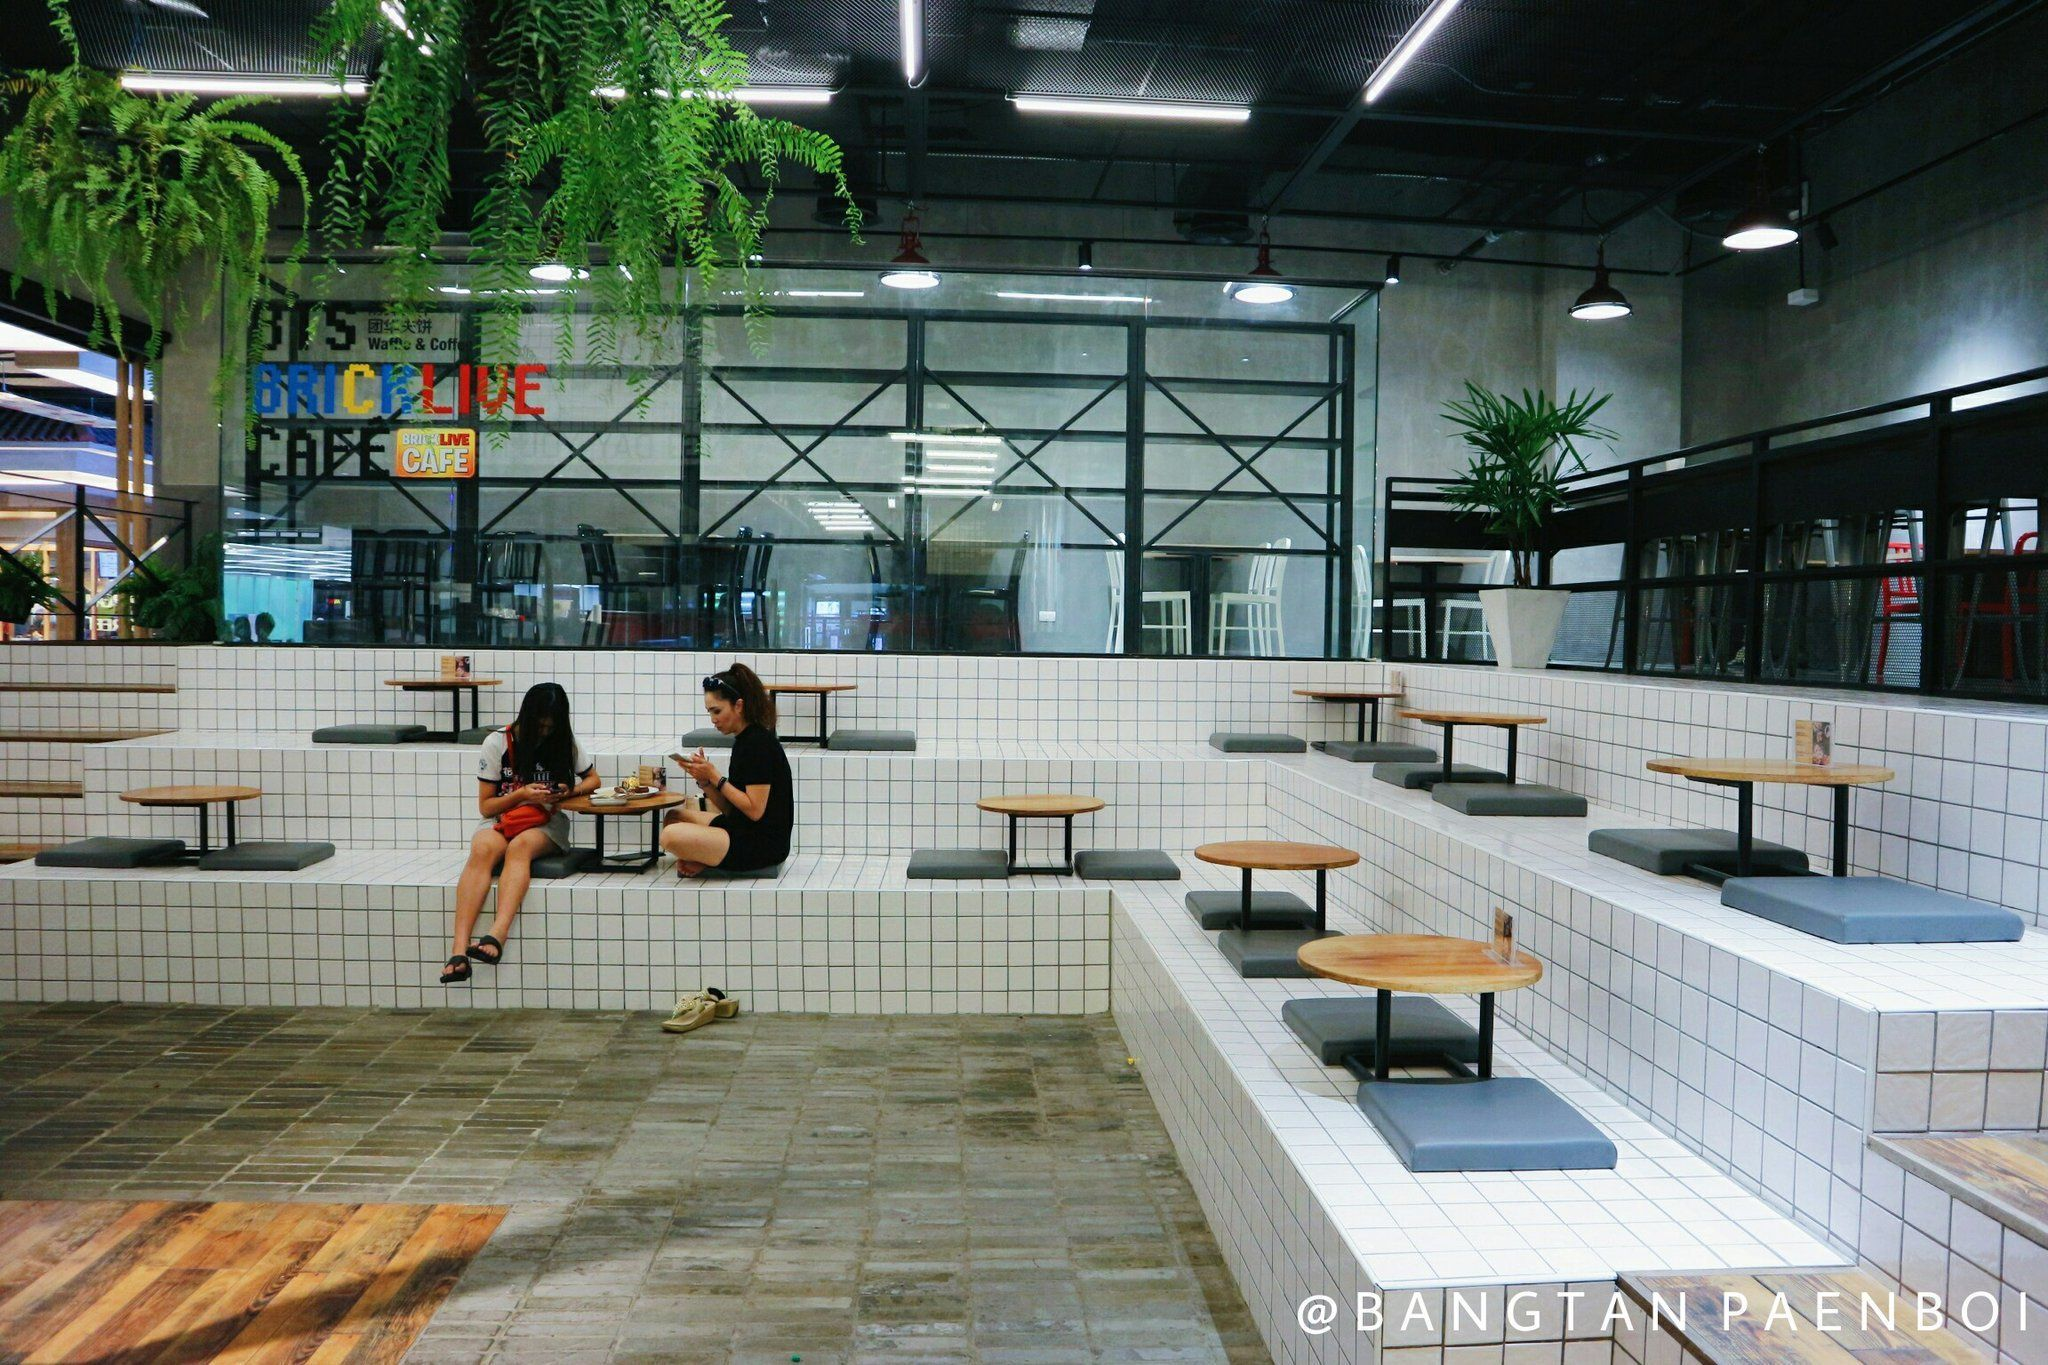 This Amazing Bts Themed Cafe In Thailand Is Now Open Themed